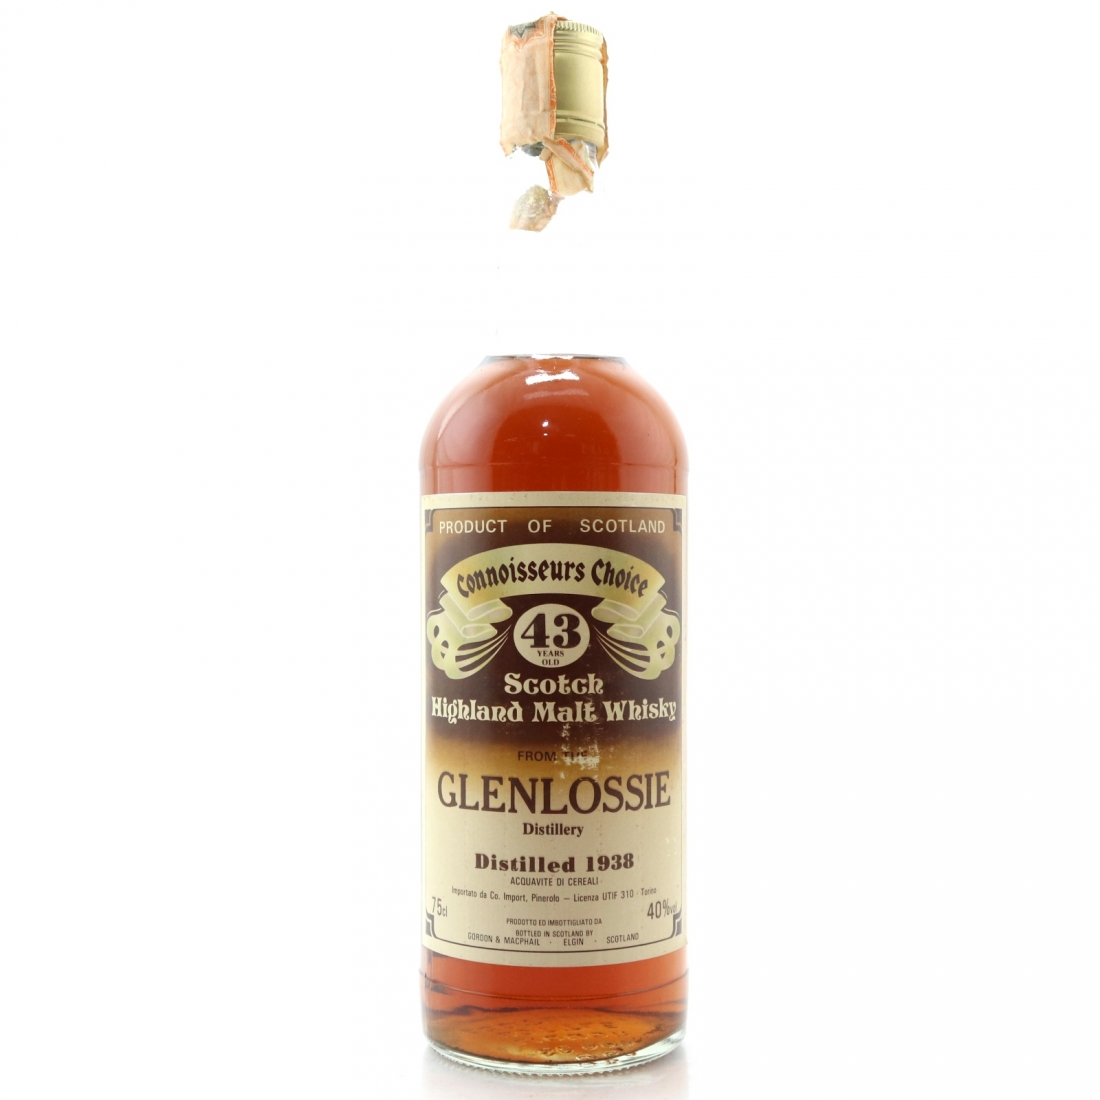 Glenlossie 1938 Gordon and MacPhail 43 Year Old / Co. Pinerolo Import